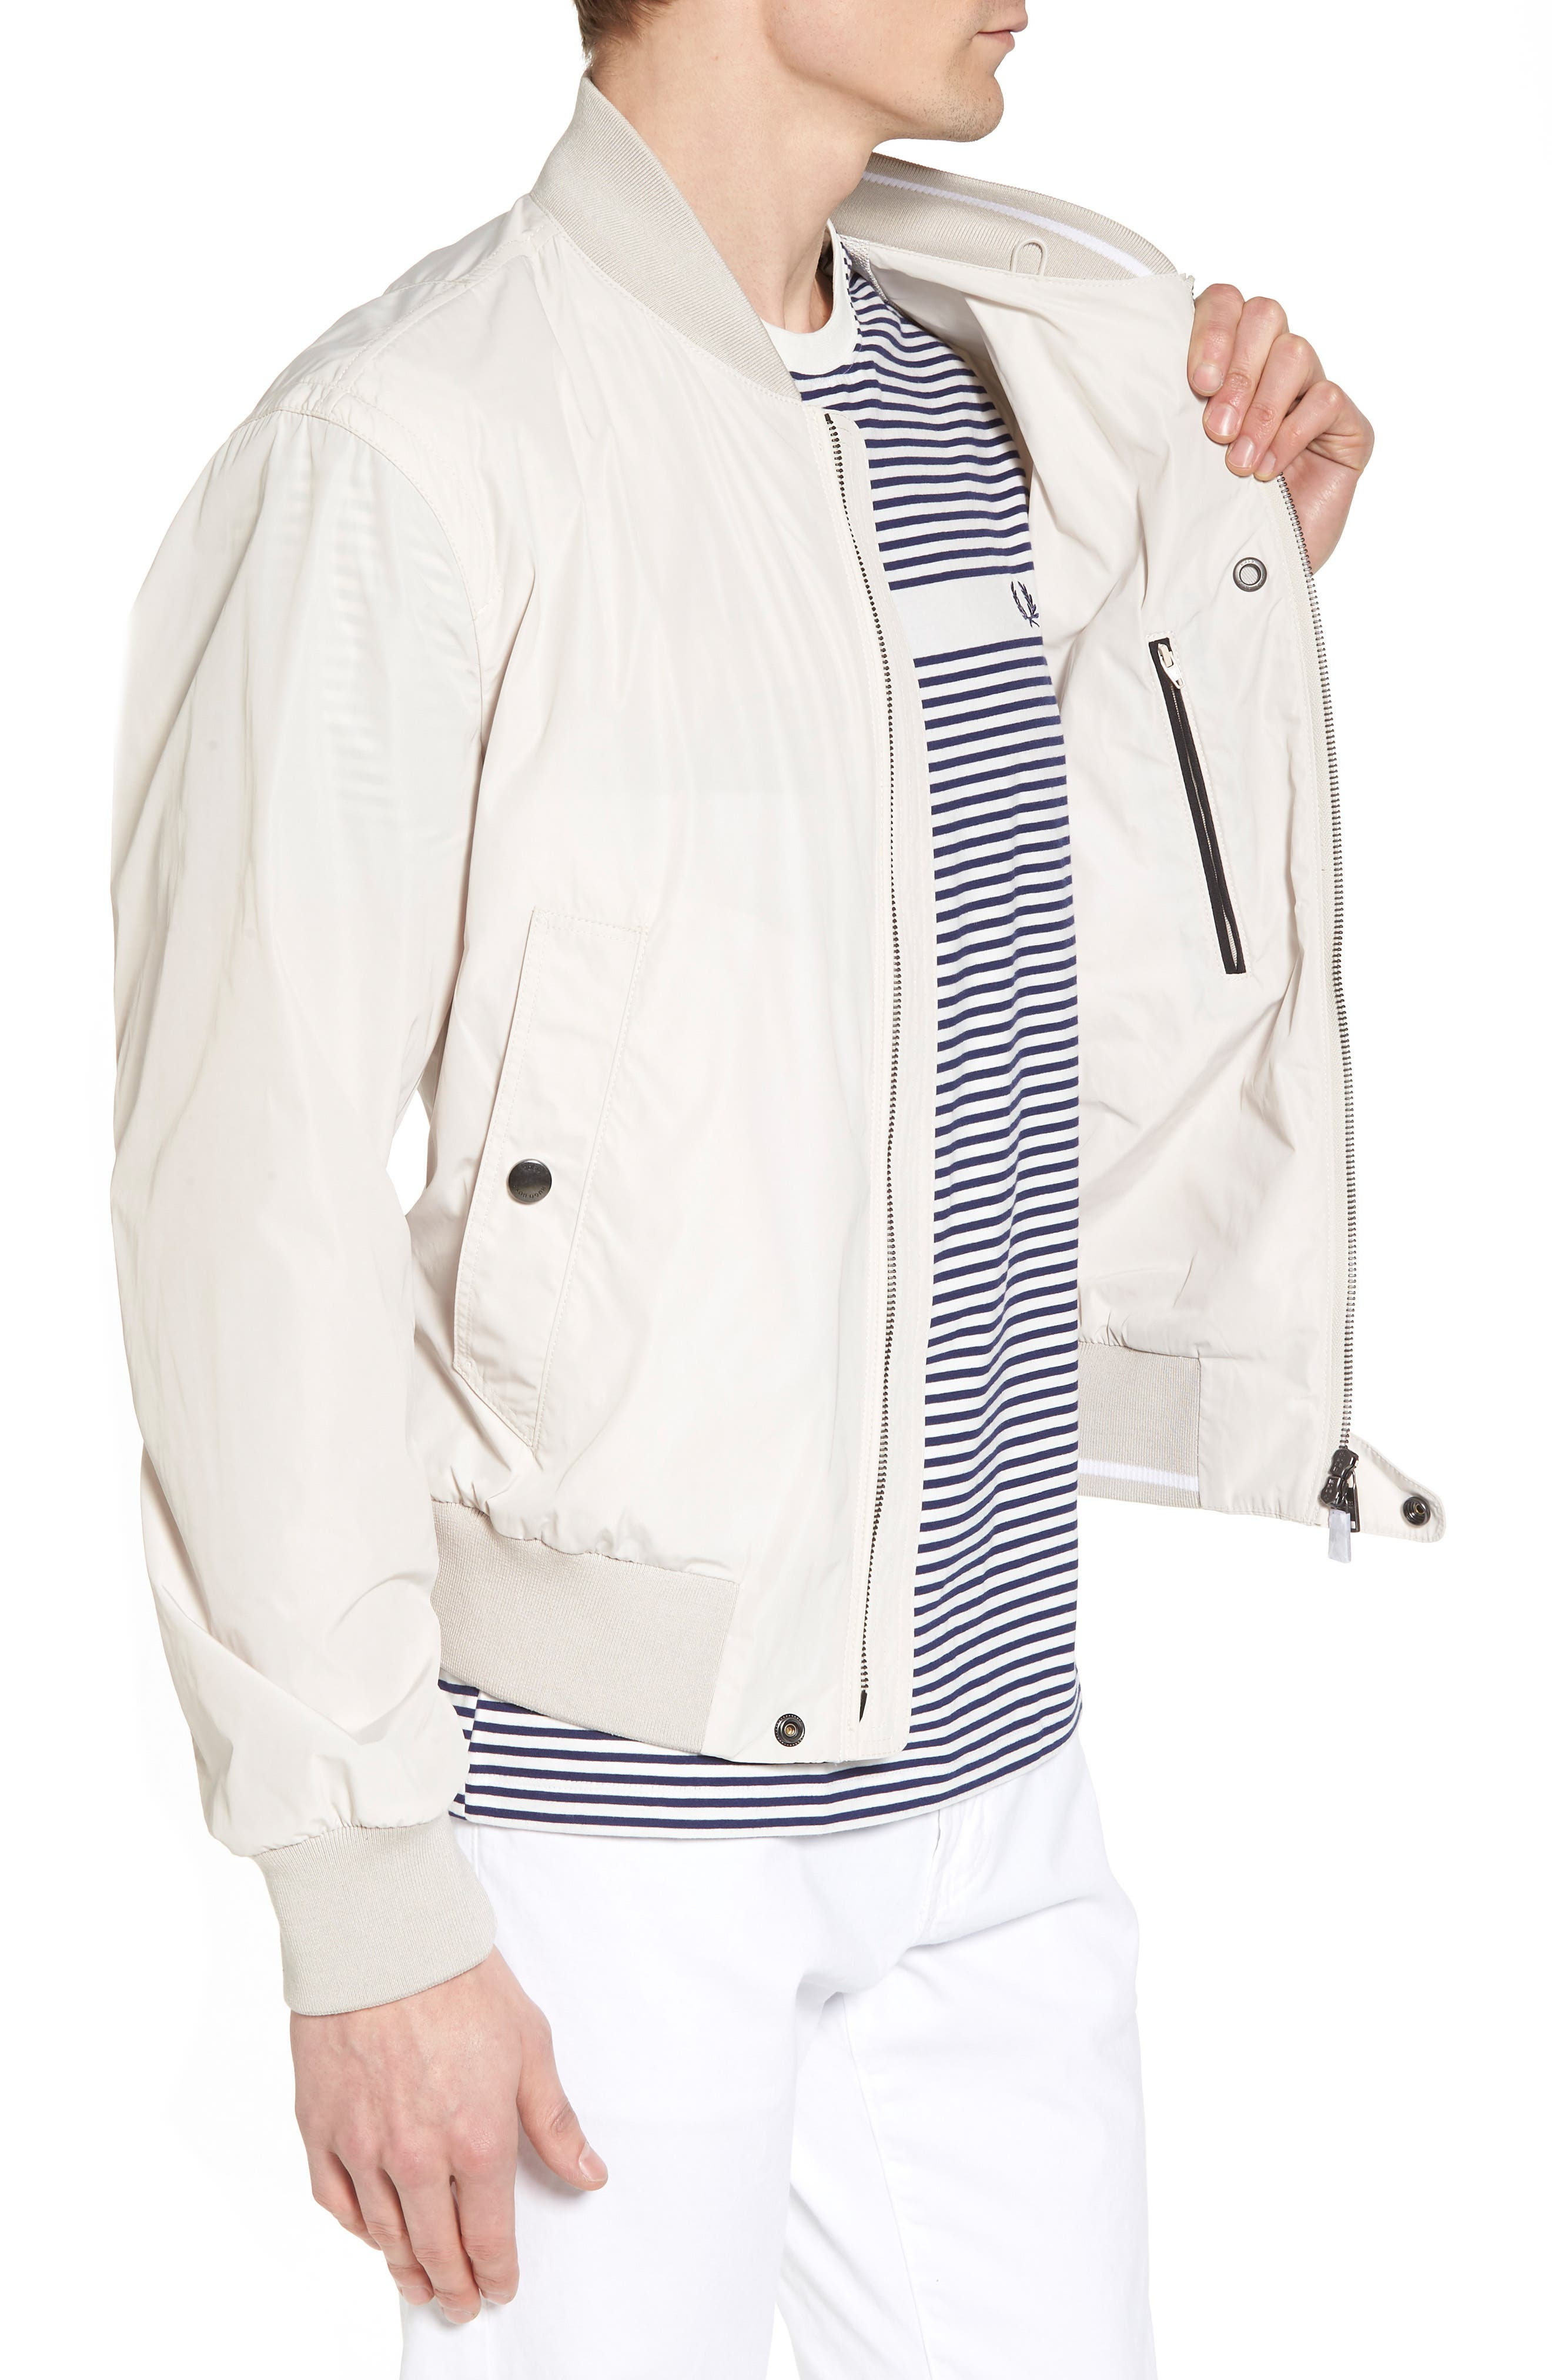 Regular Fit Bomber Jacket,                             Alternate thumbnail 3, color,                             102